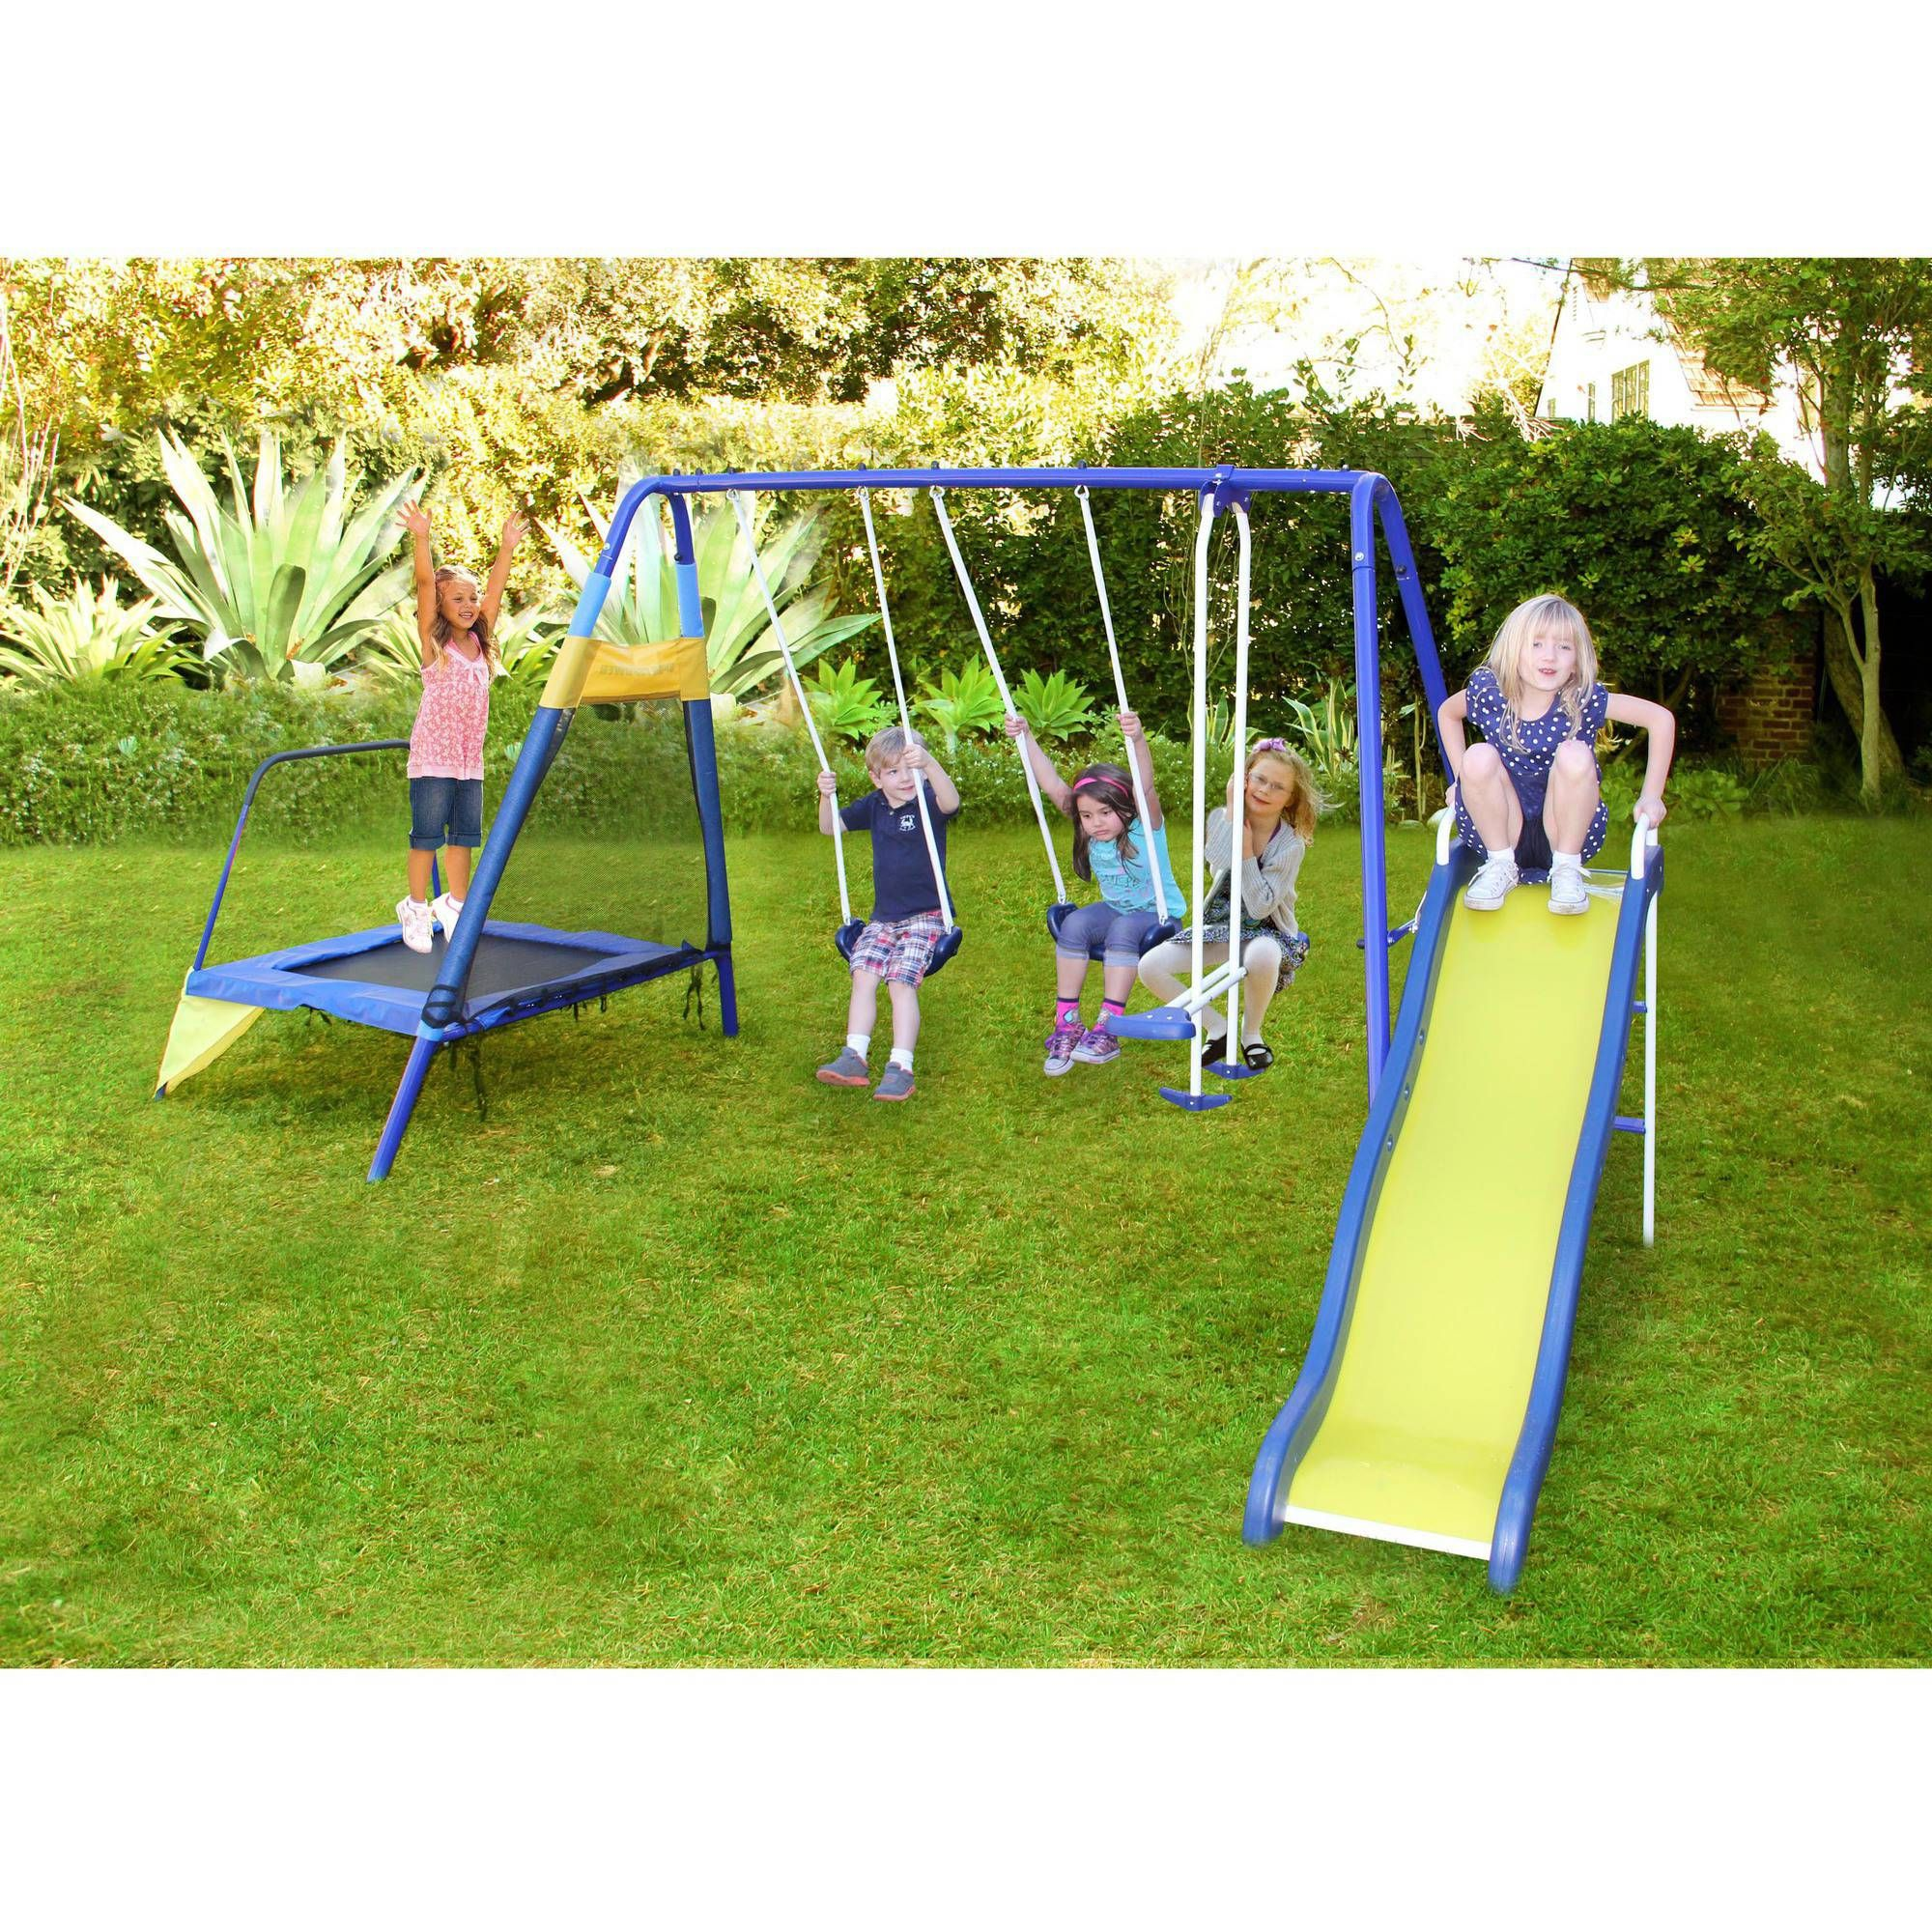 Merveilleux Explore Metal Swing Sets, Outdoor Swing Sets, And More!